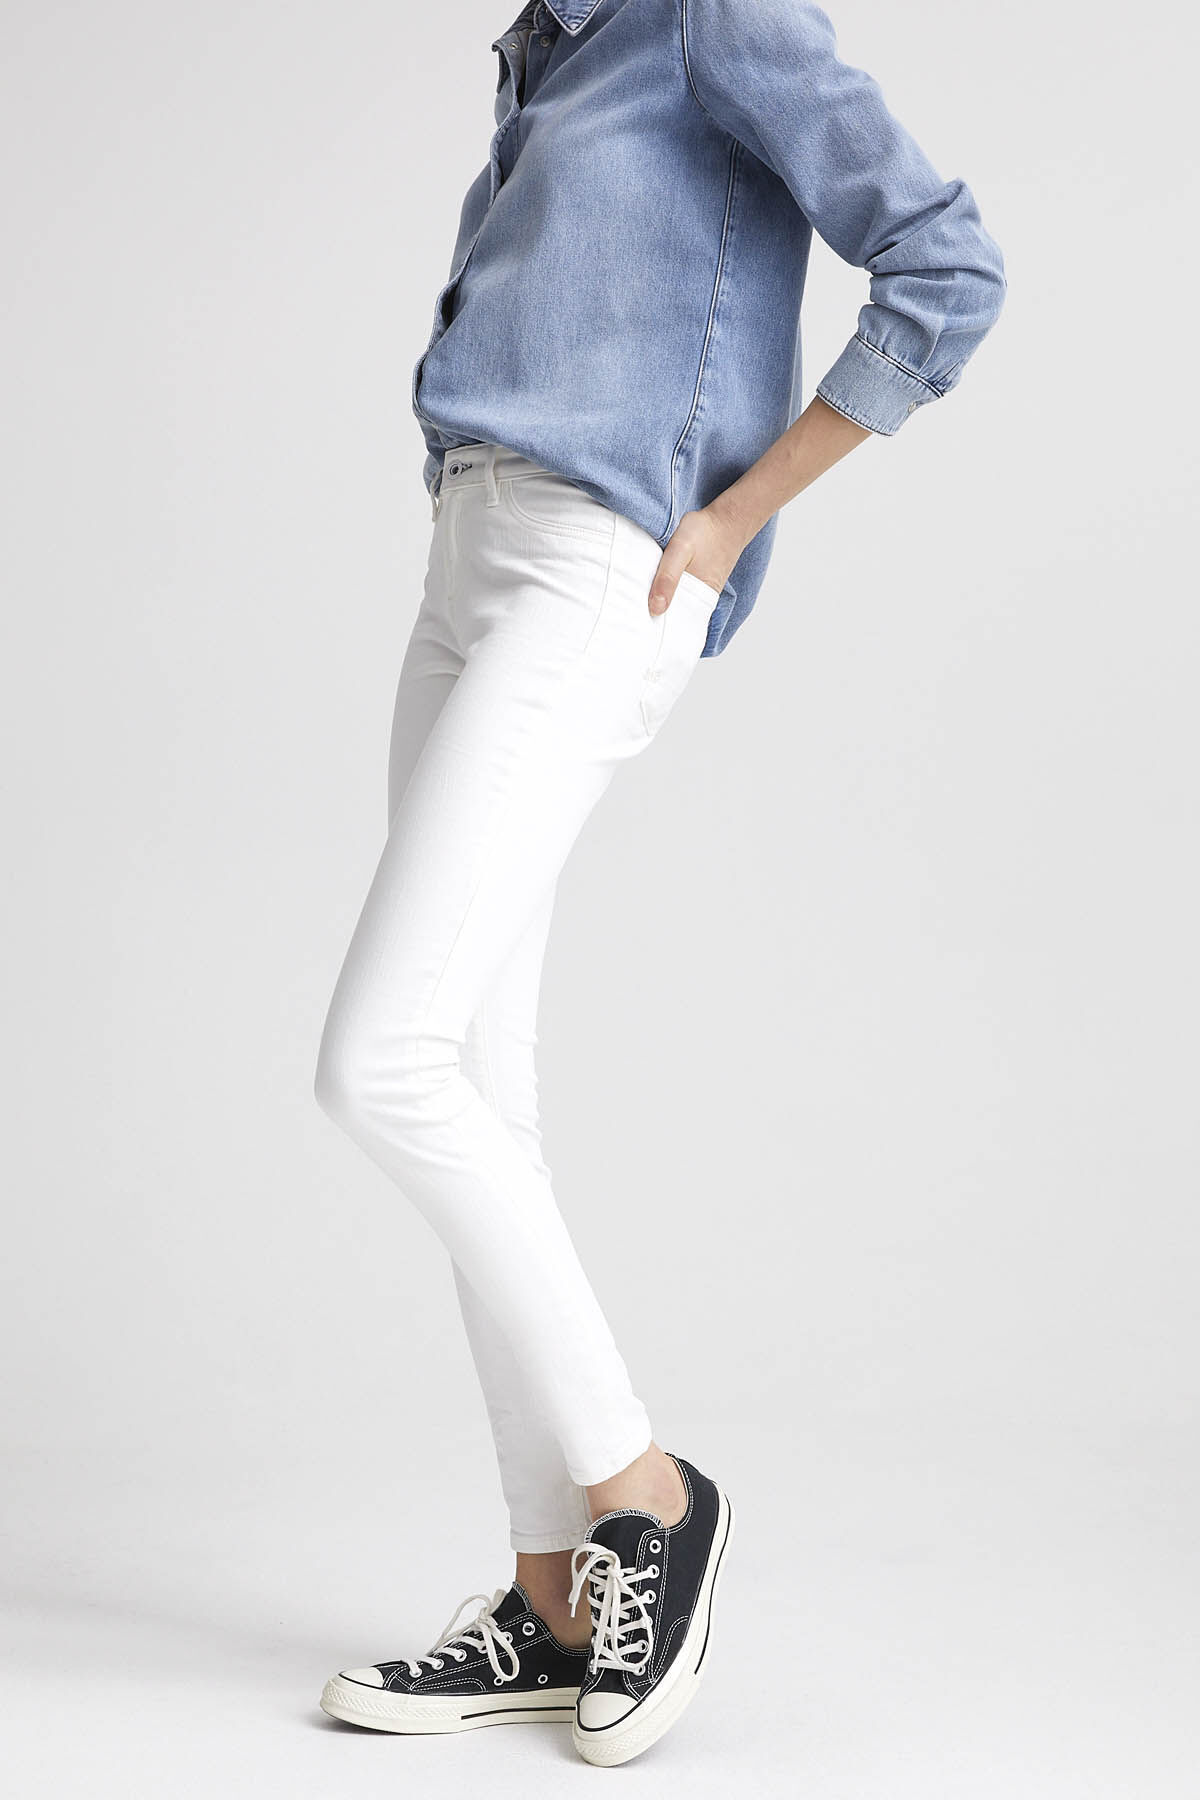 SPRAY White Comfort Stretch Denim - Mid-rise, Tight Fit